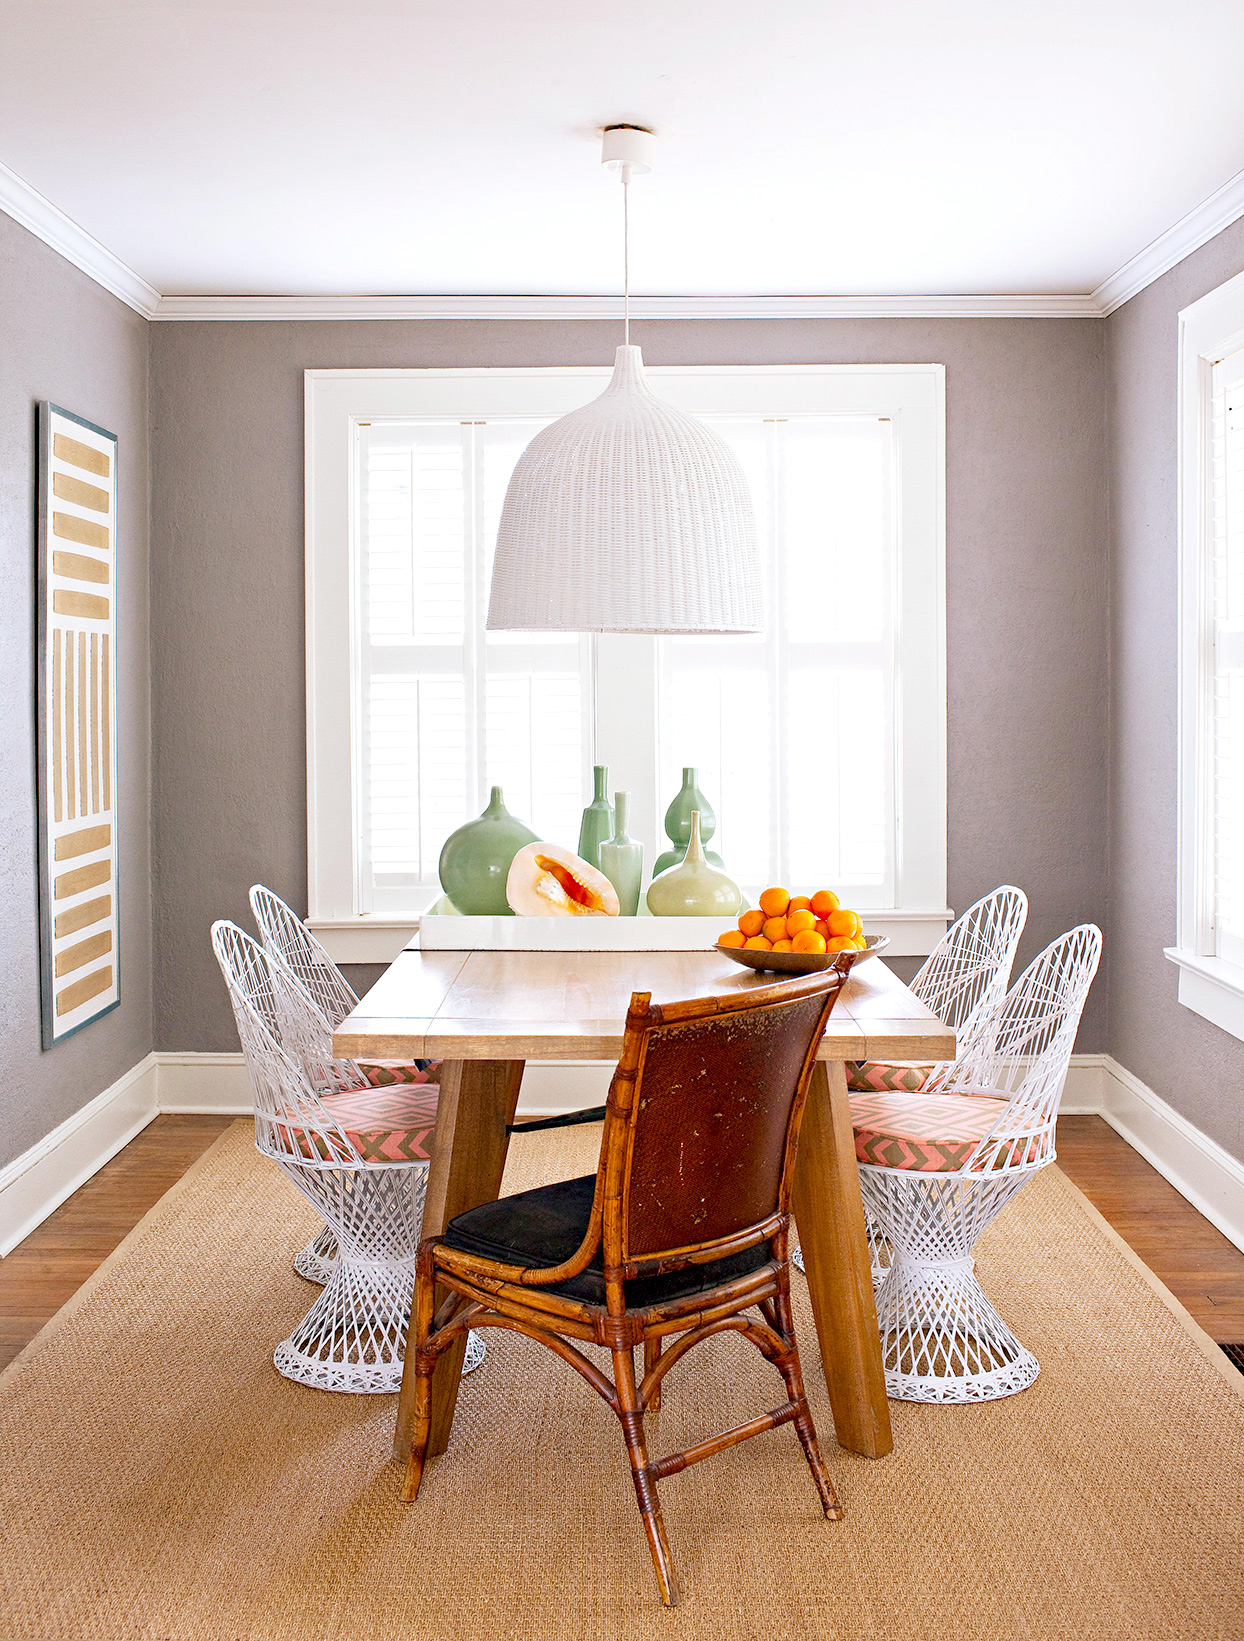 Dining area with gray walls and wicker chairs